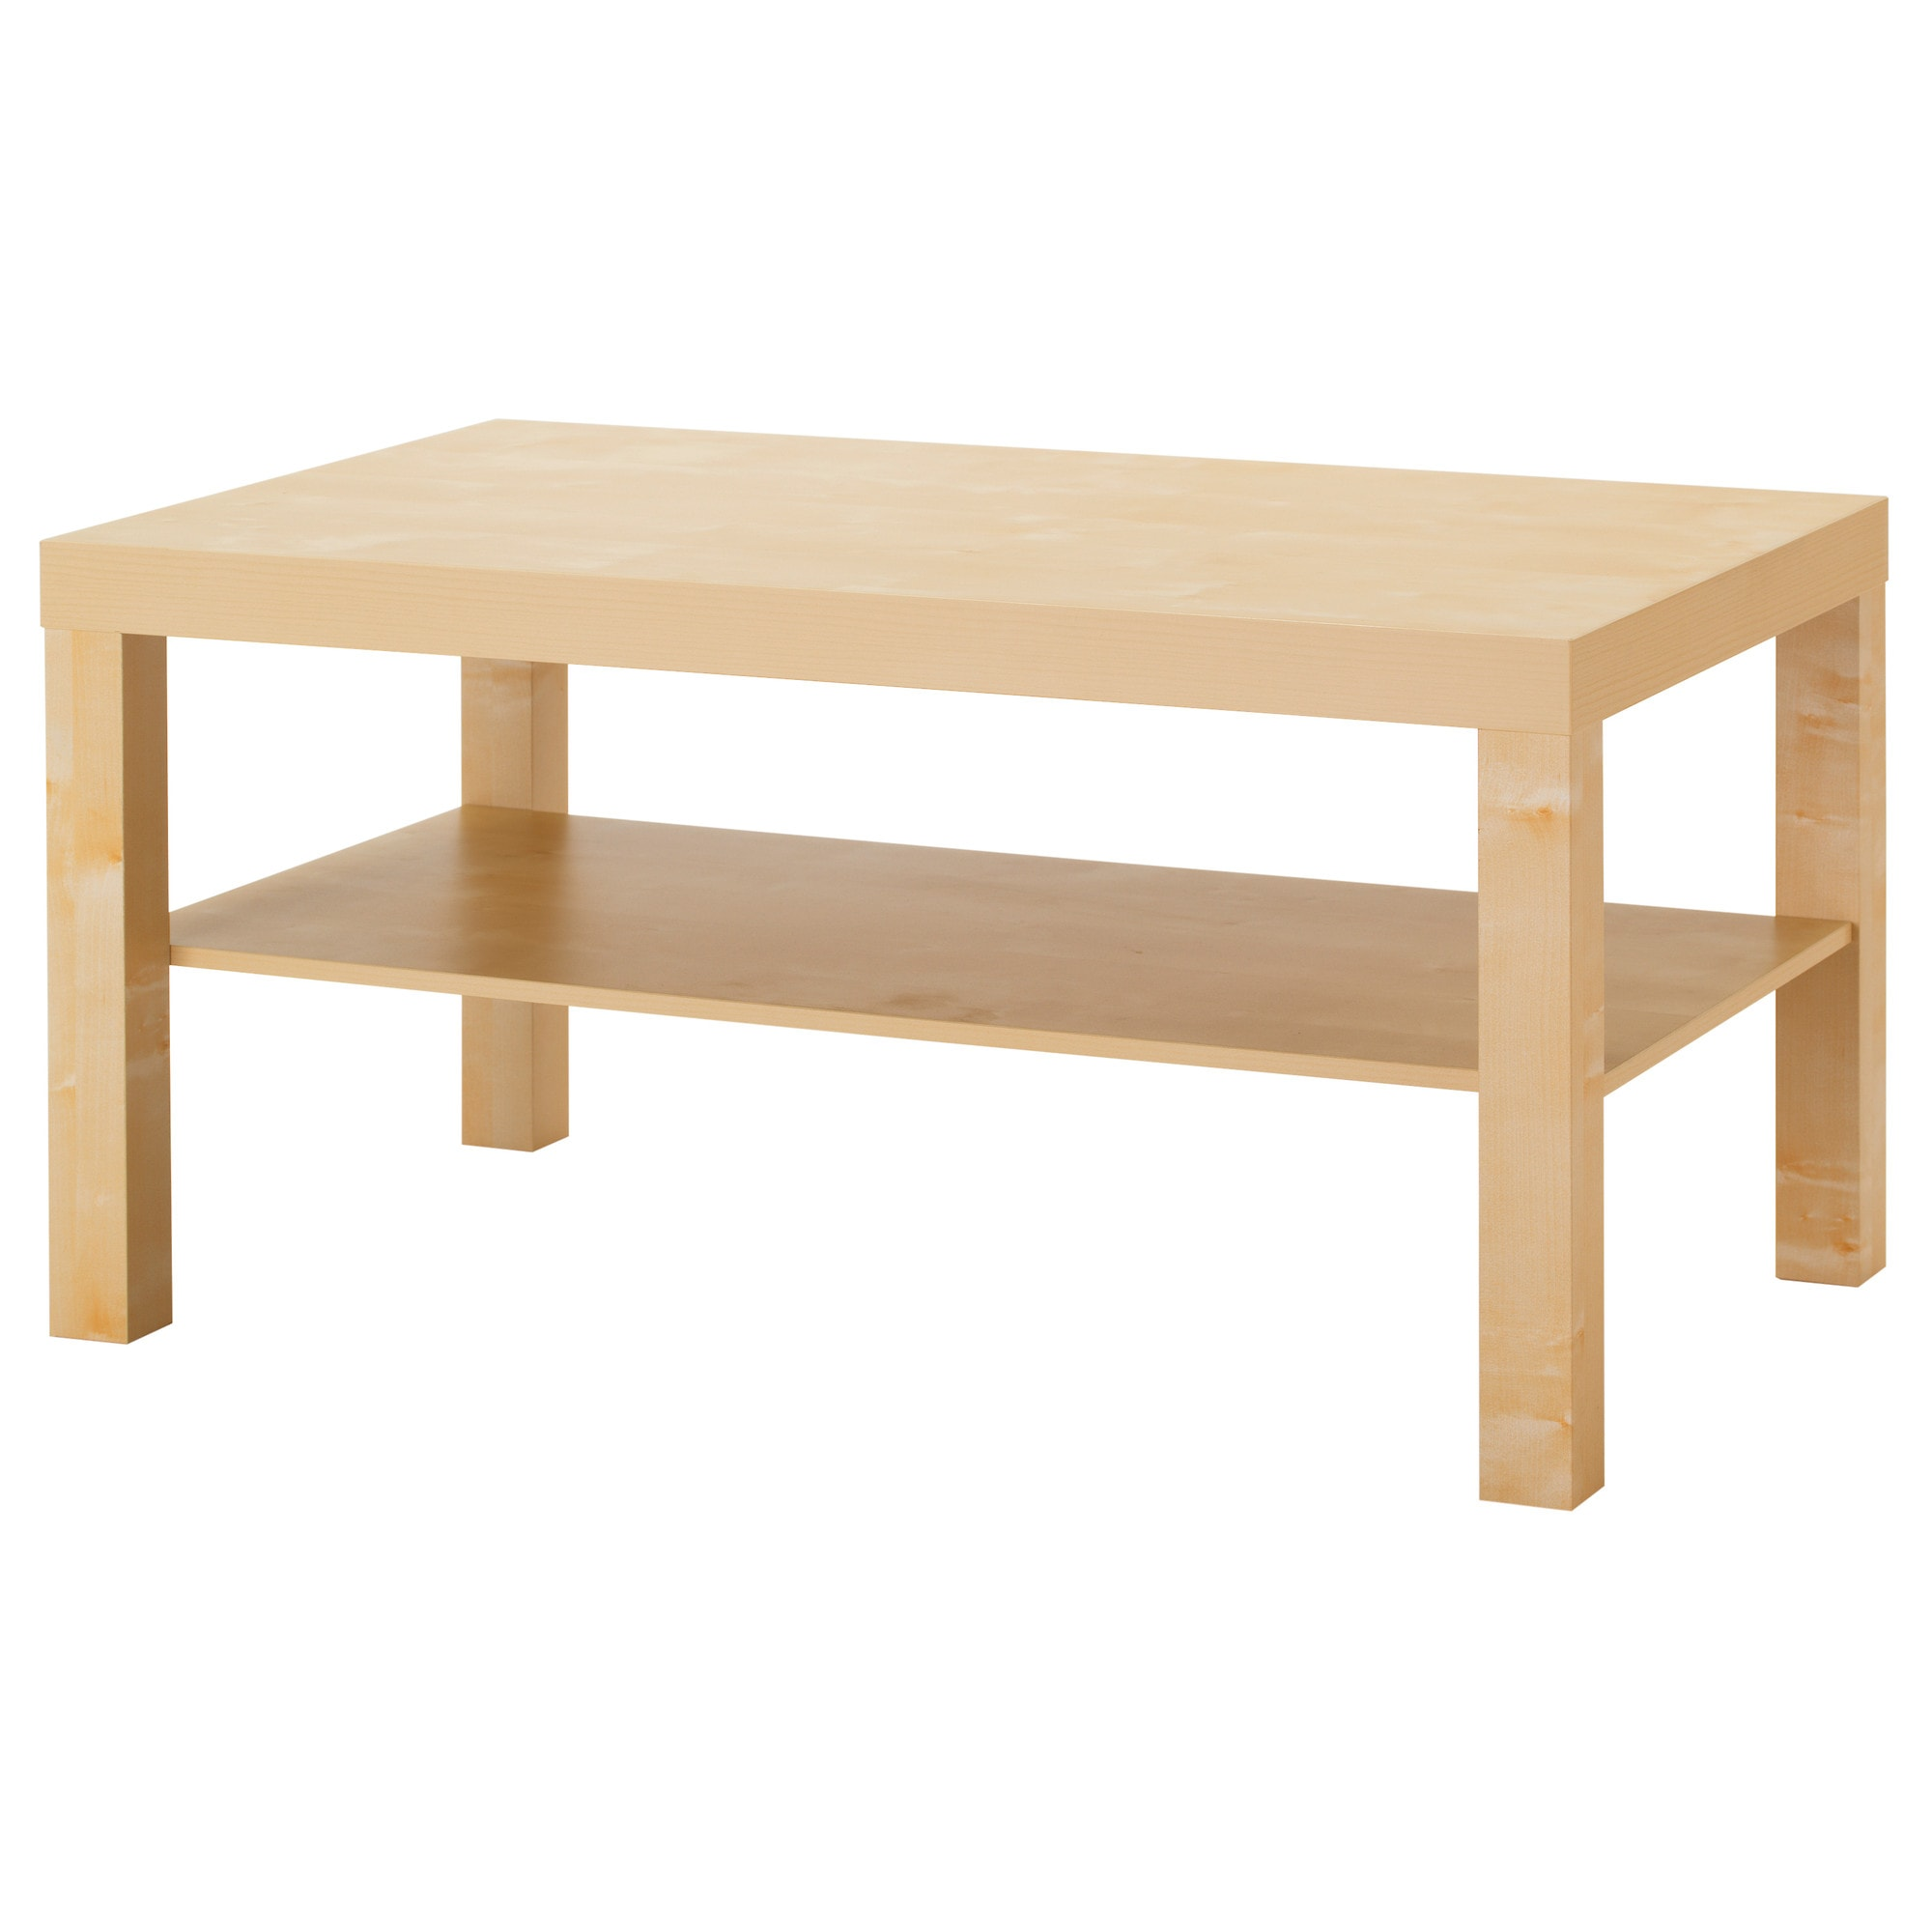 "LACK Coffee table birch effect 35 3 8x21 5 8 "" IKEA"